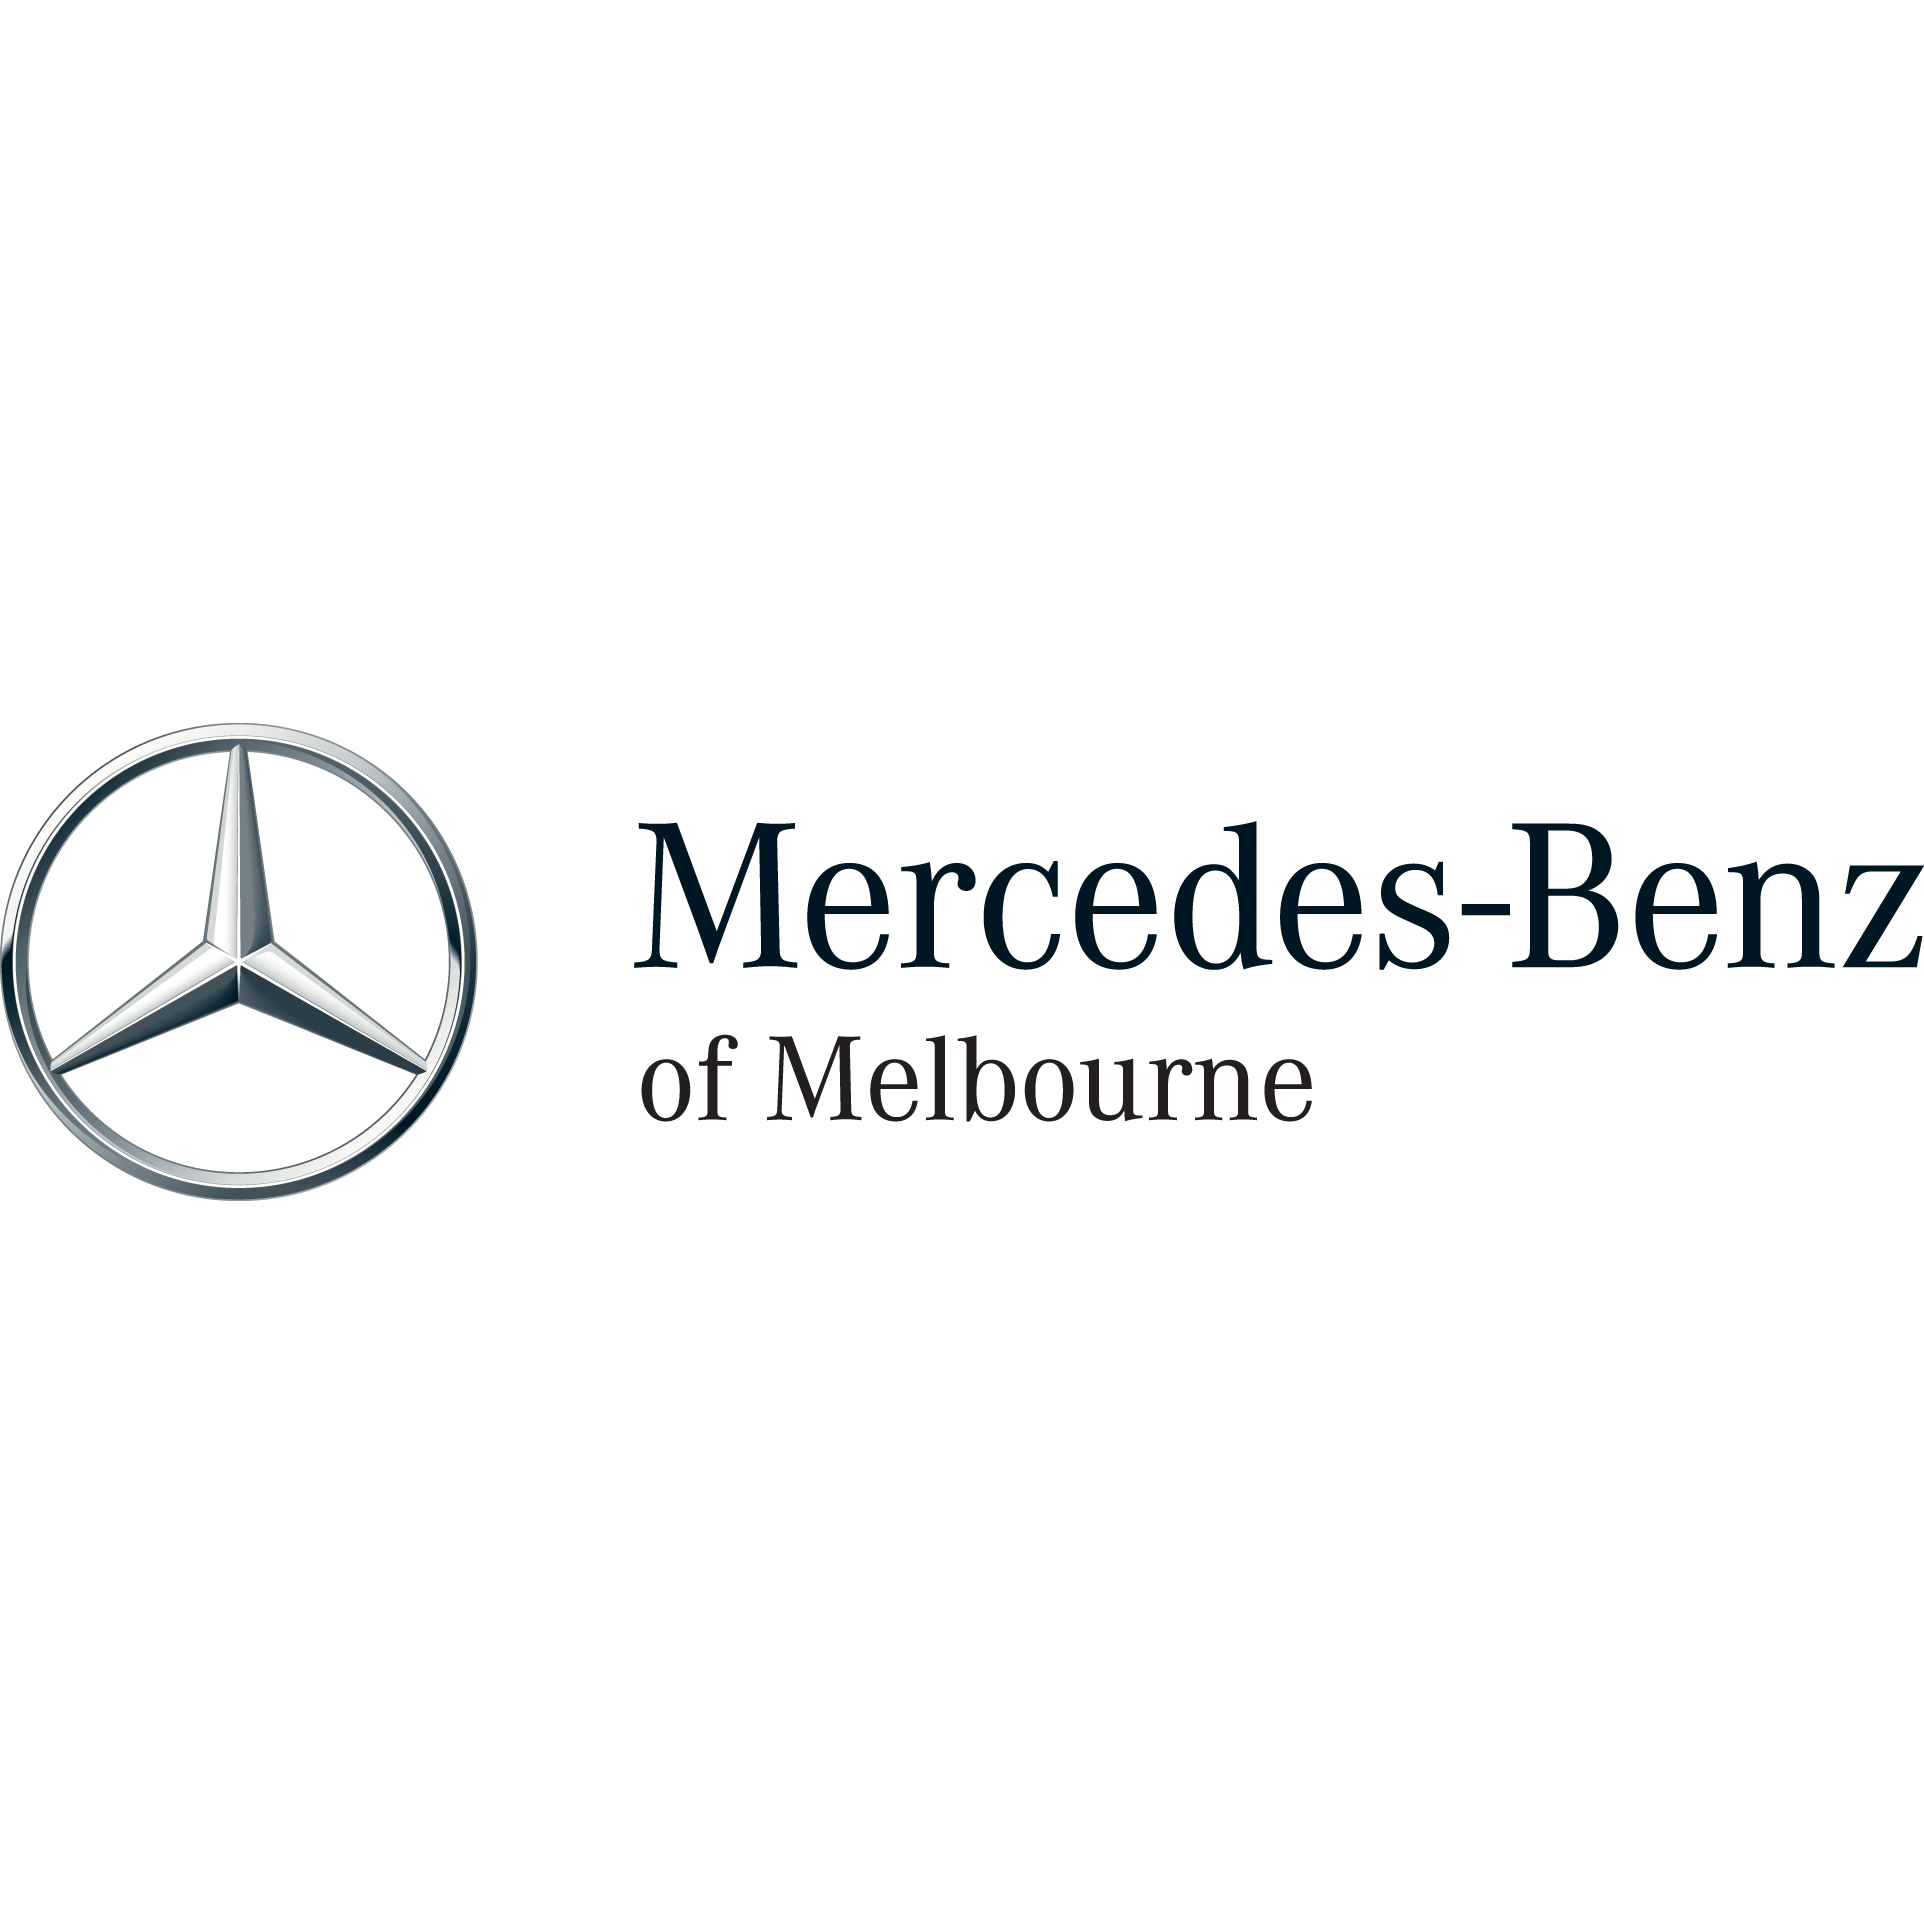 Mercedes benz of melbourne coupons near me in melbourne for Mercedes benz near me